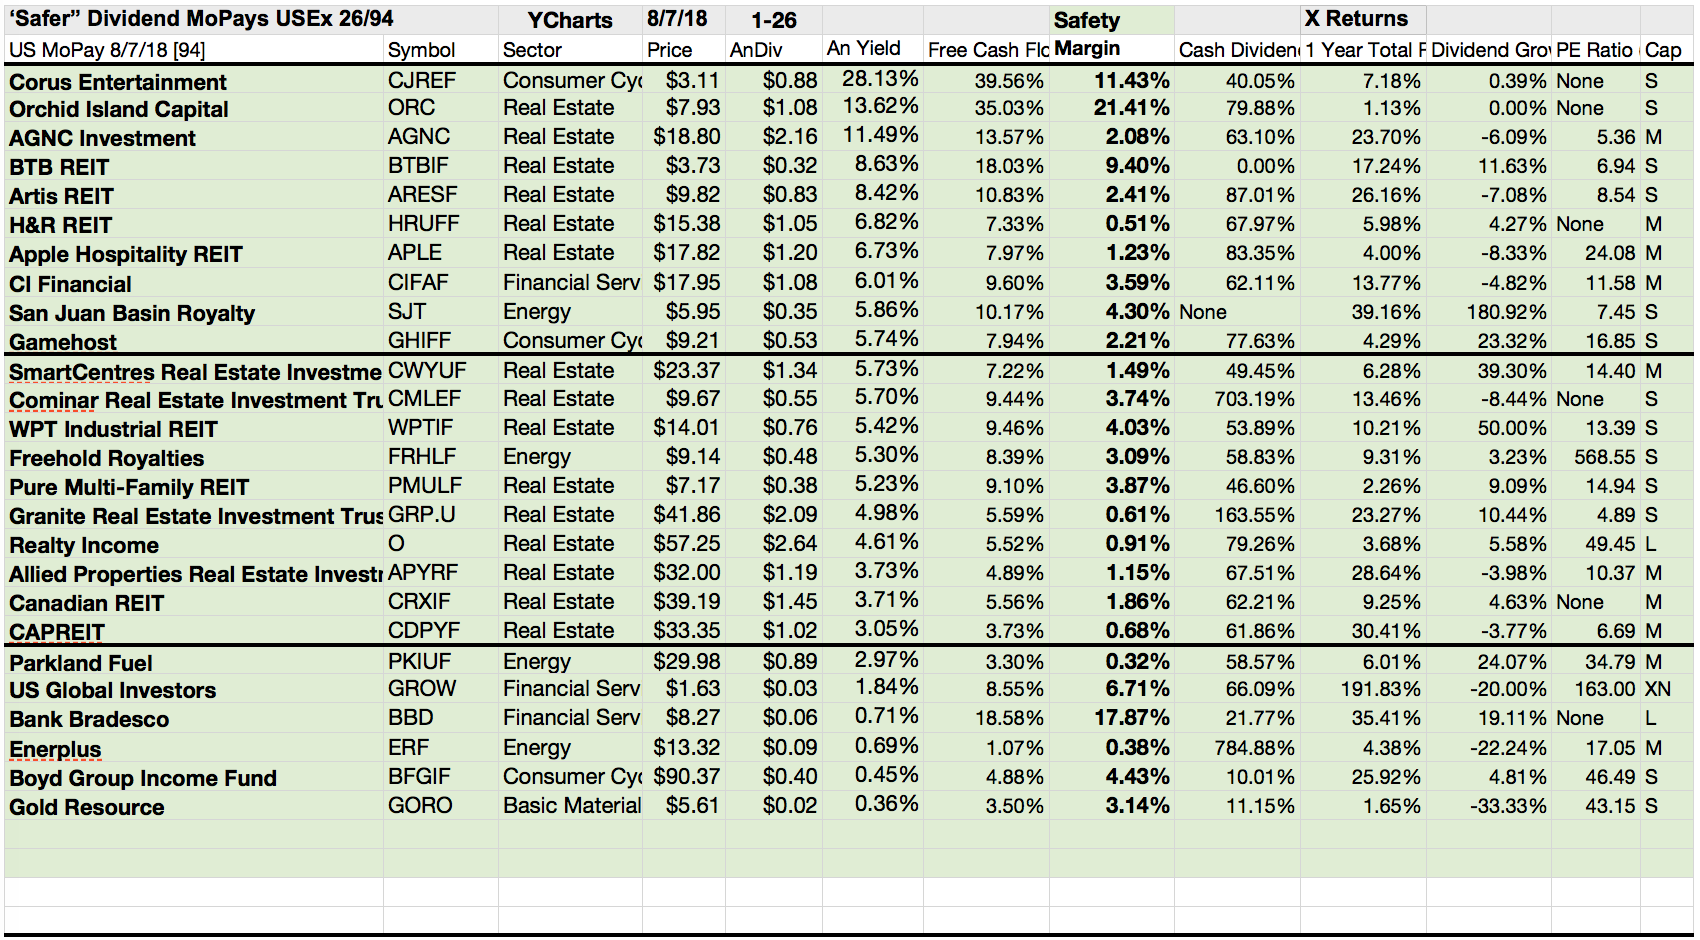 26 safer monthly paid dividend equities cover their u s august